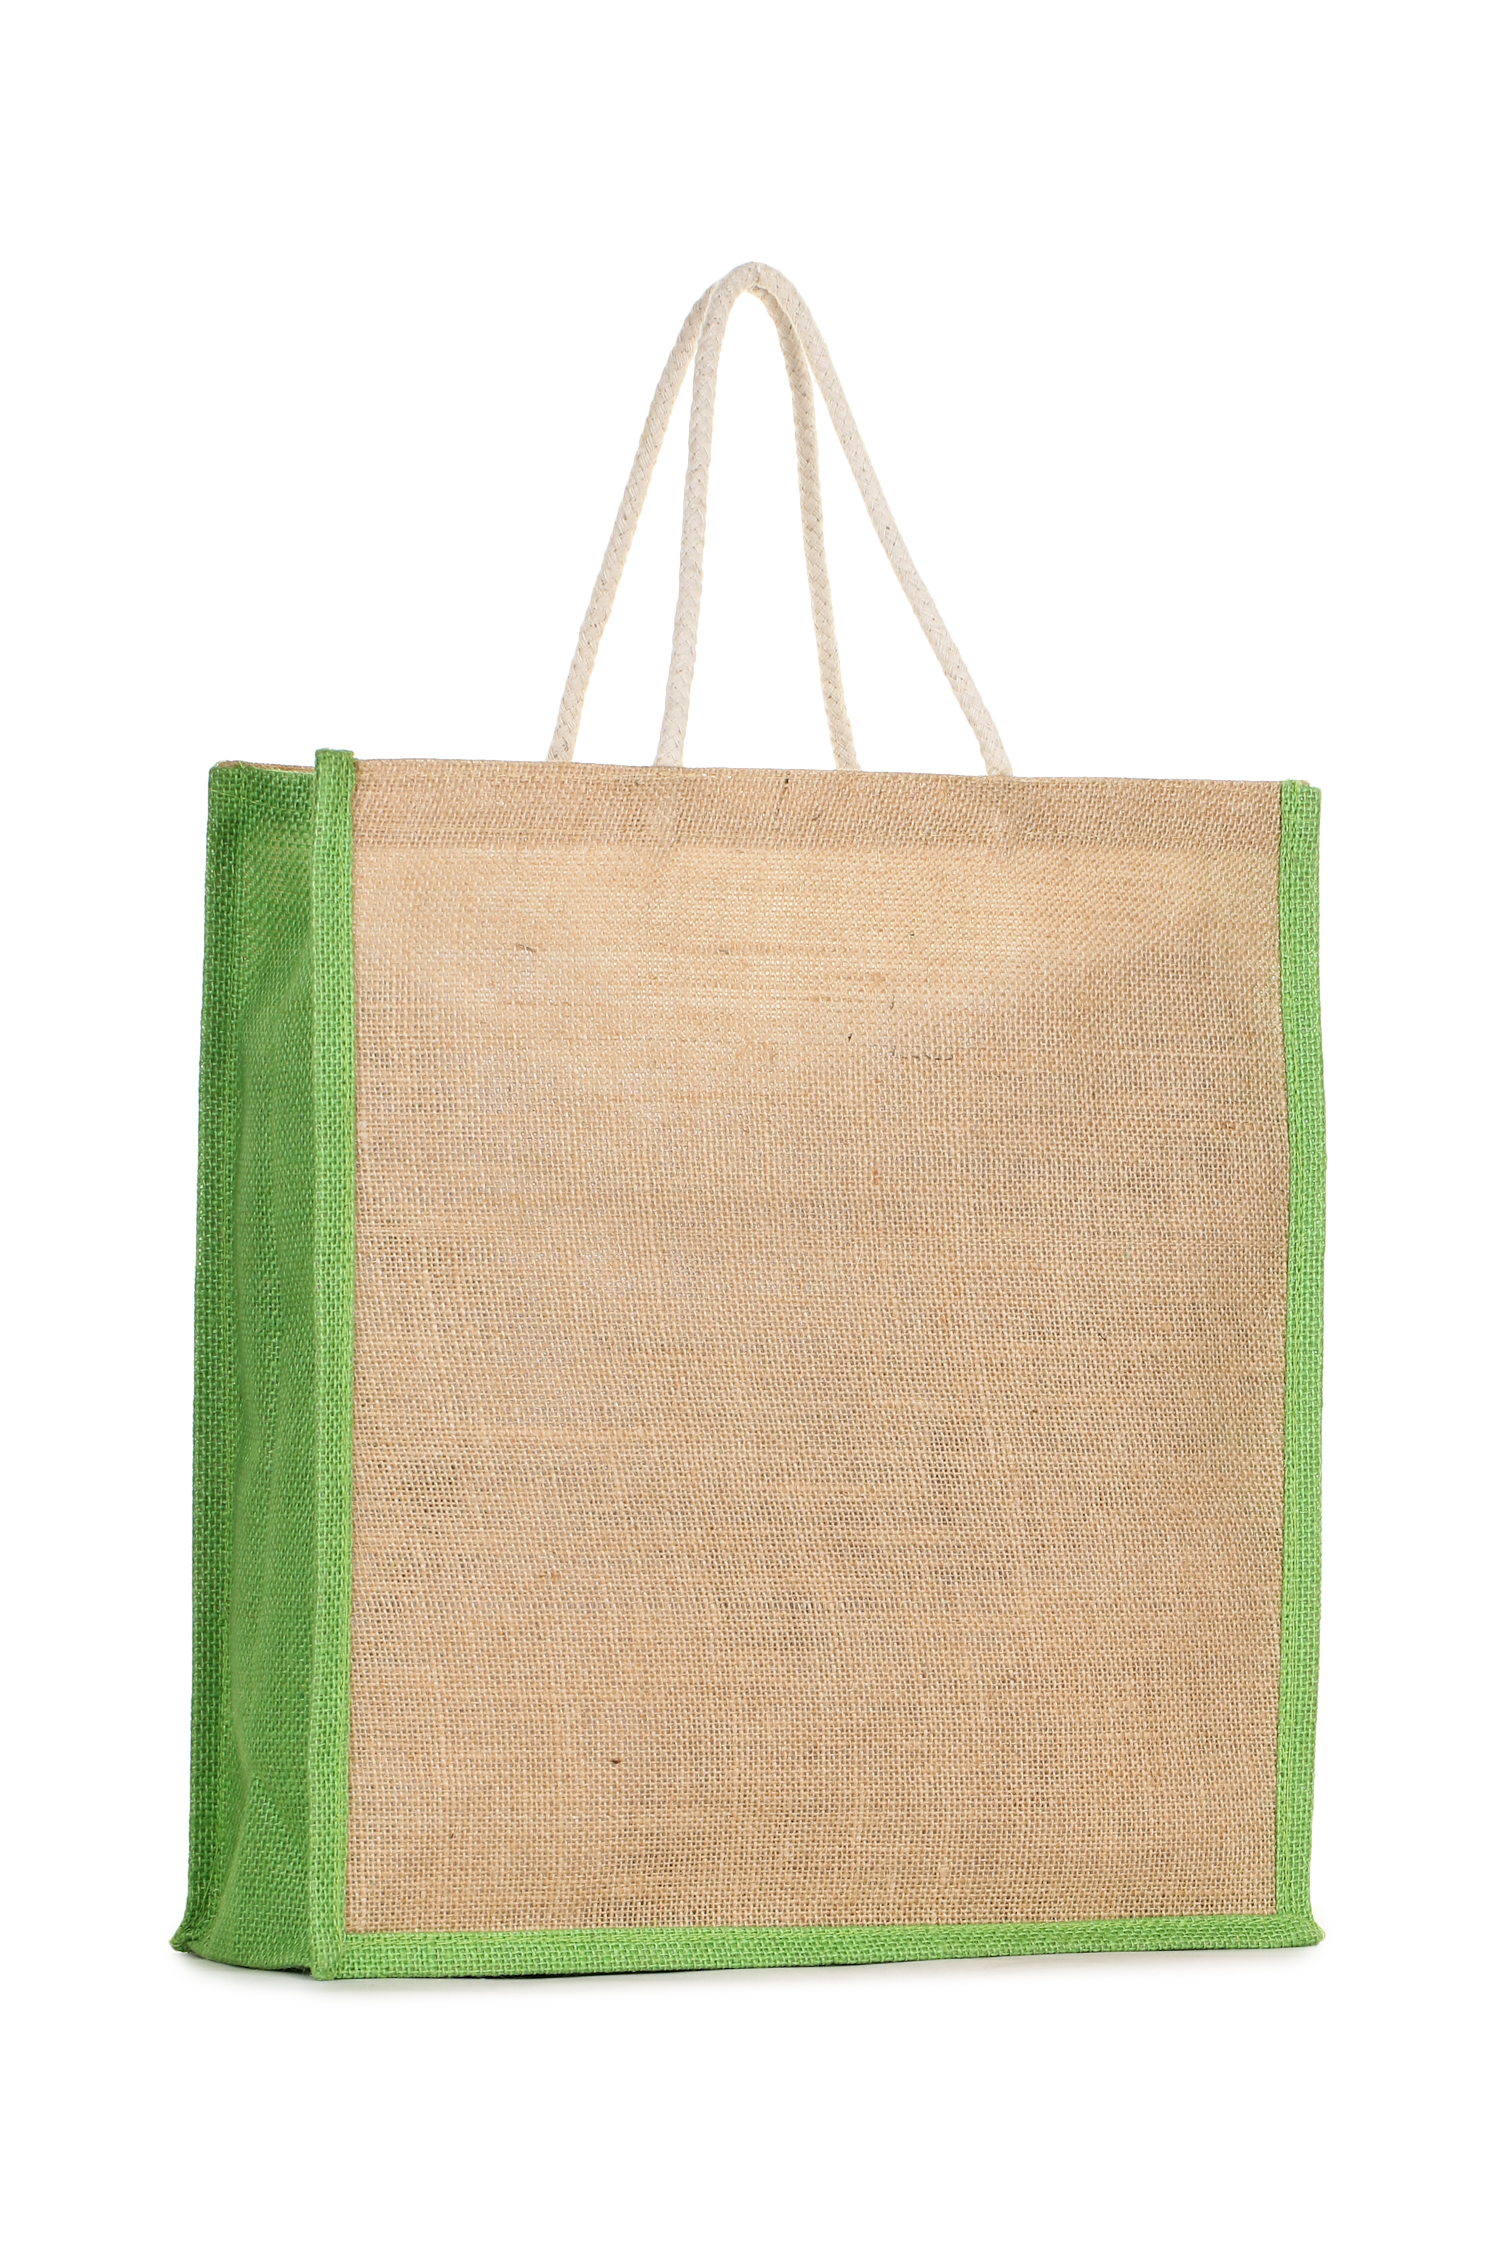 Trendy Trotters  Jute Fabric , Inner Vinyl Bags for Shopping, Lunch Boxes, Vegetables, Multipurpose  Light Green Plain